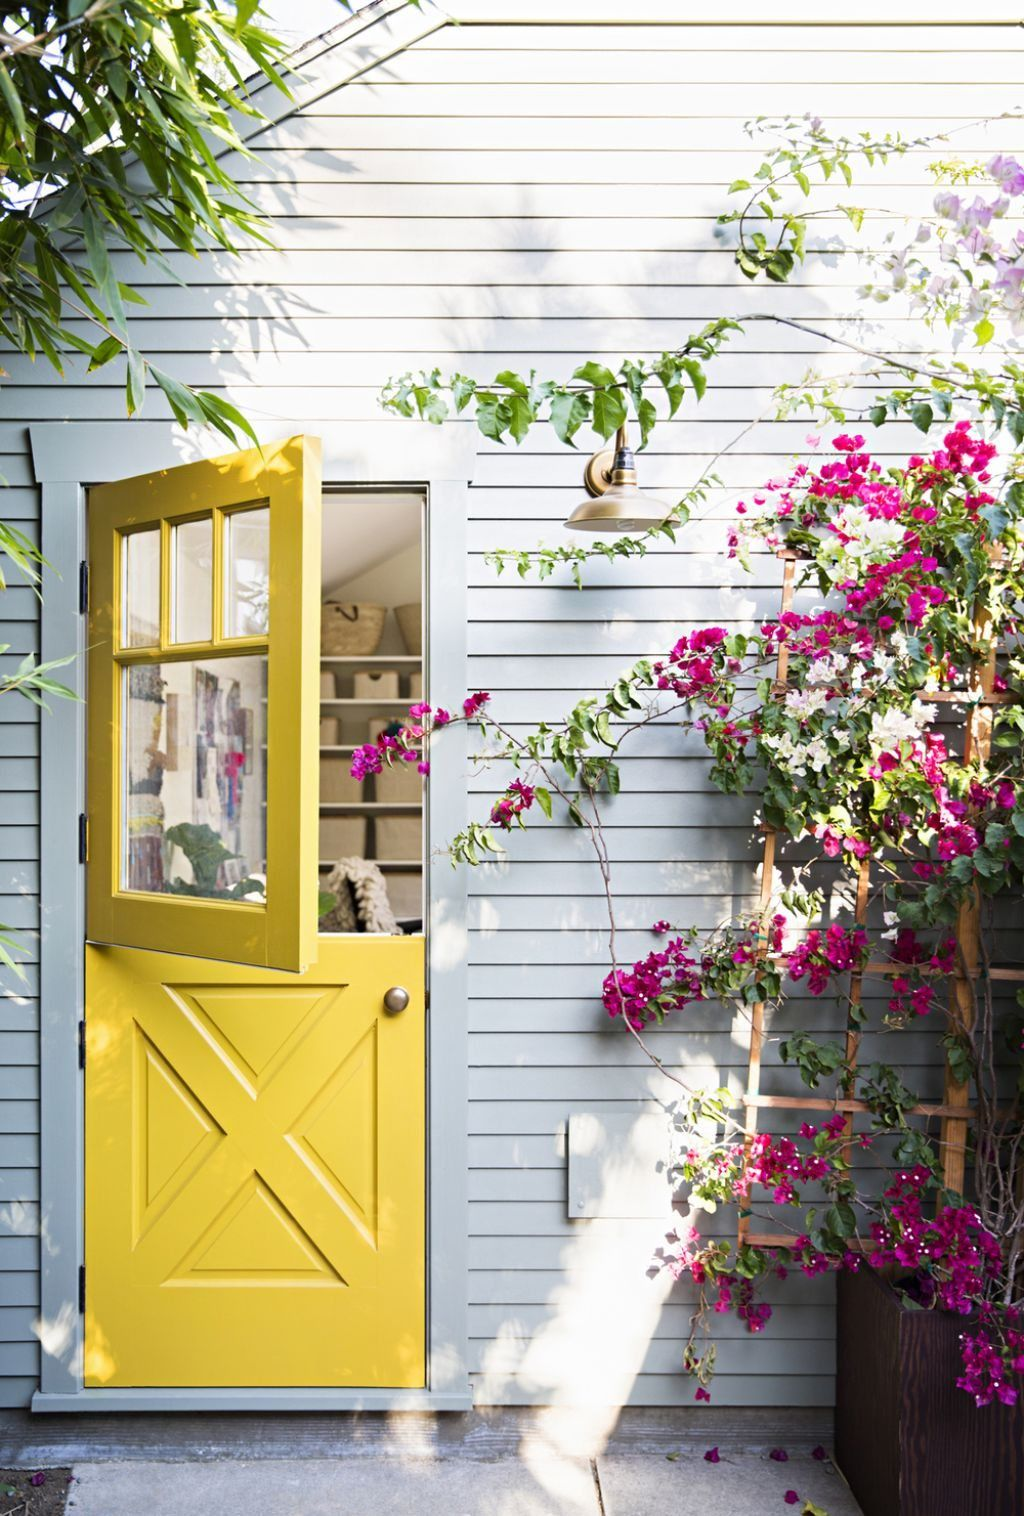 Back dutch door in yellow color future home inspiration